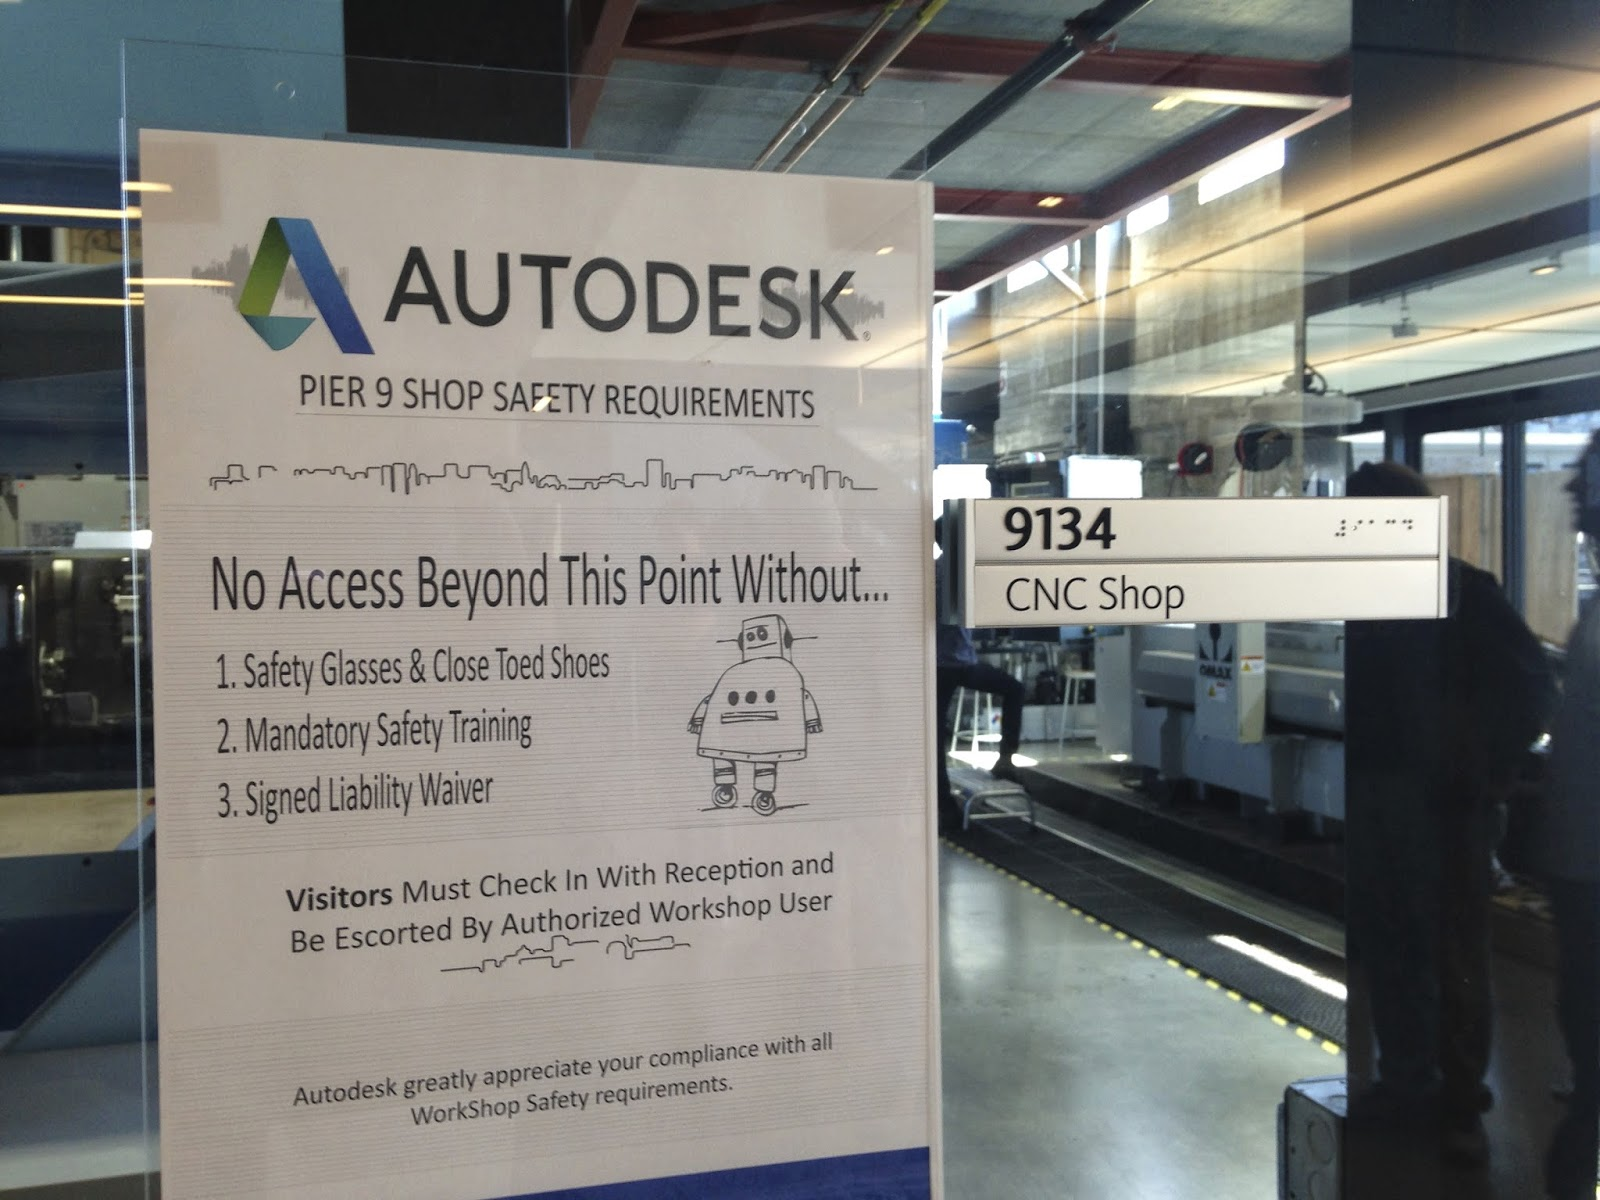 Pier 9 guidelines Autodesk